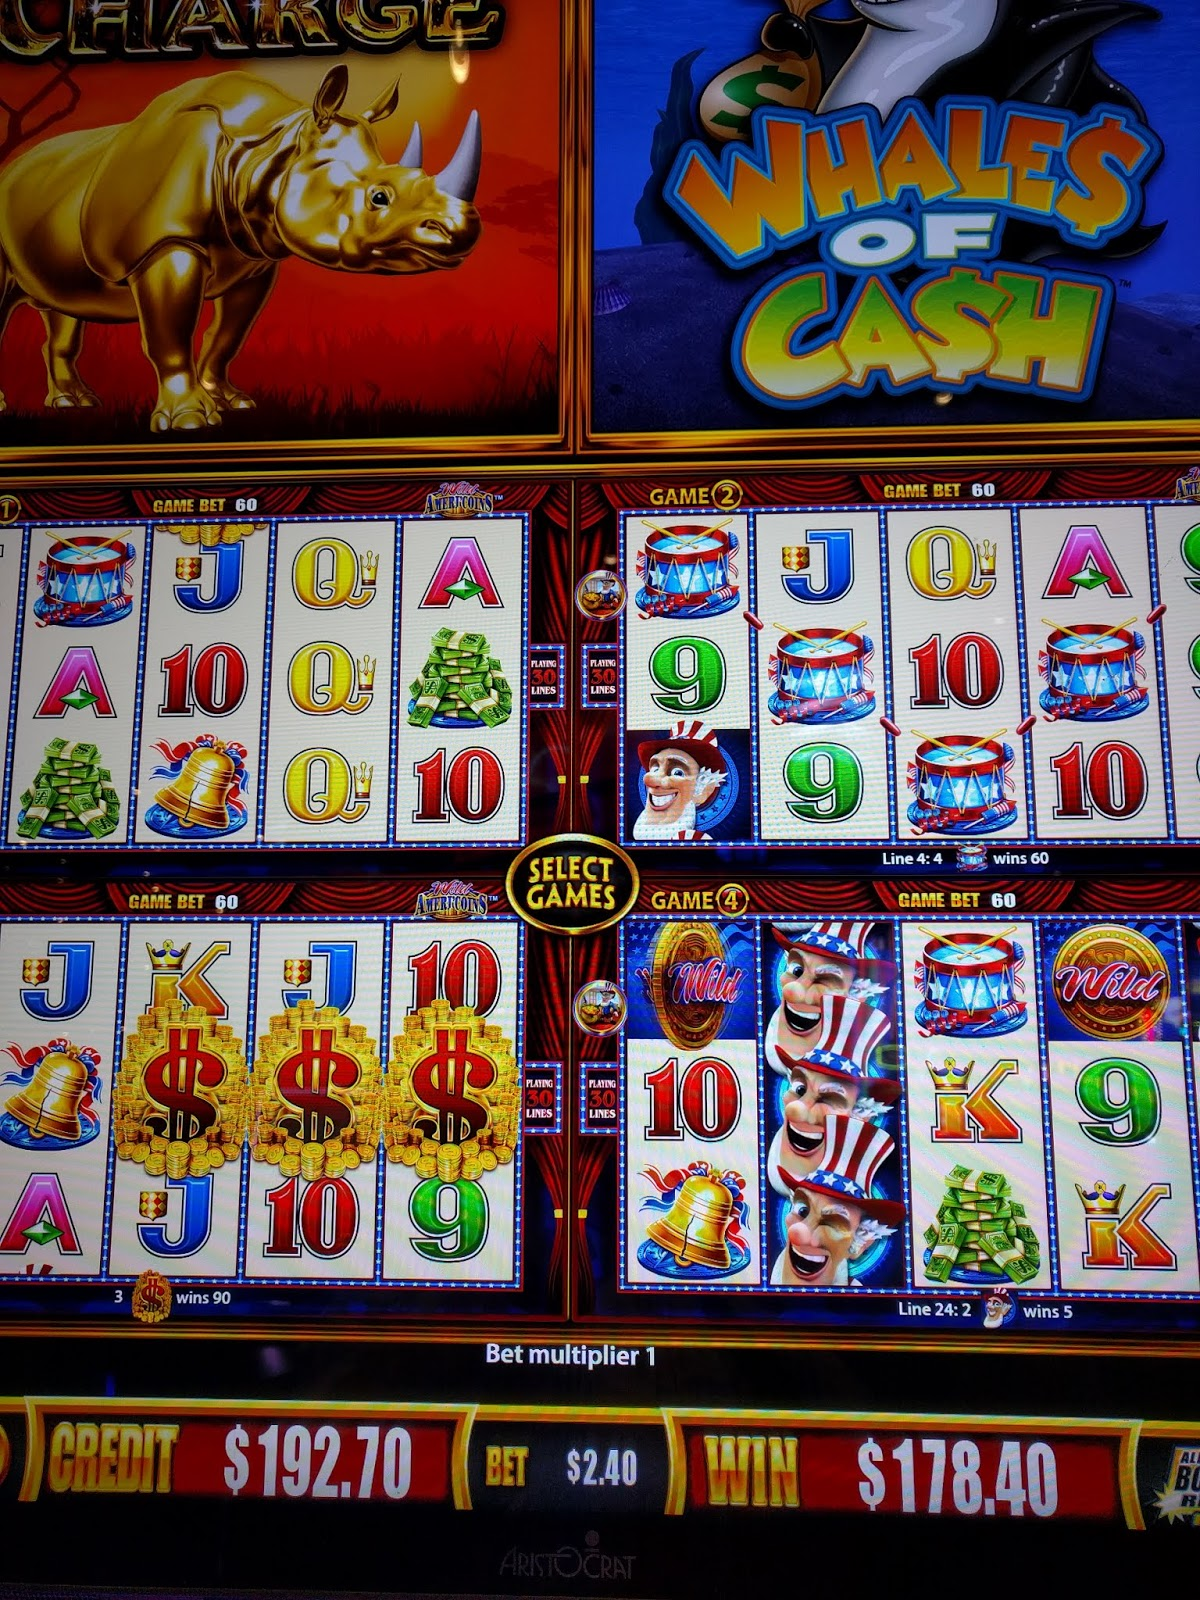 Play casino games online usa players